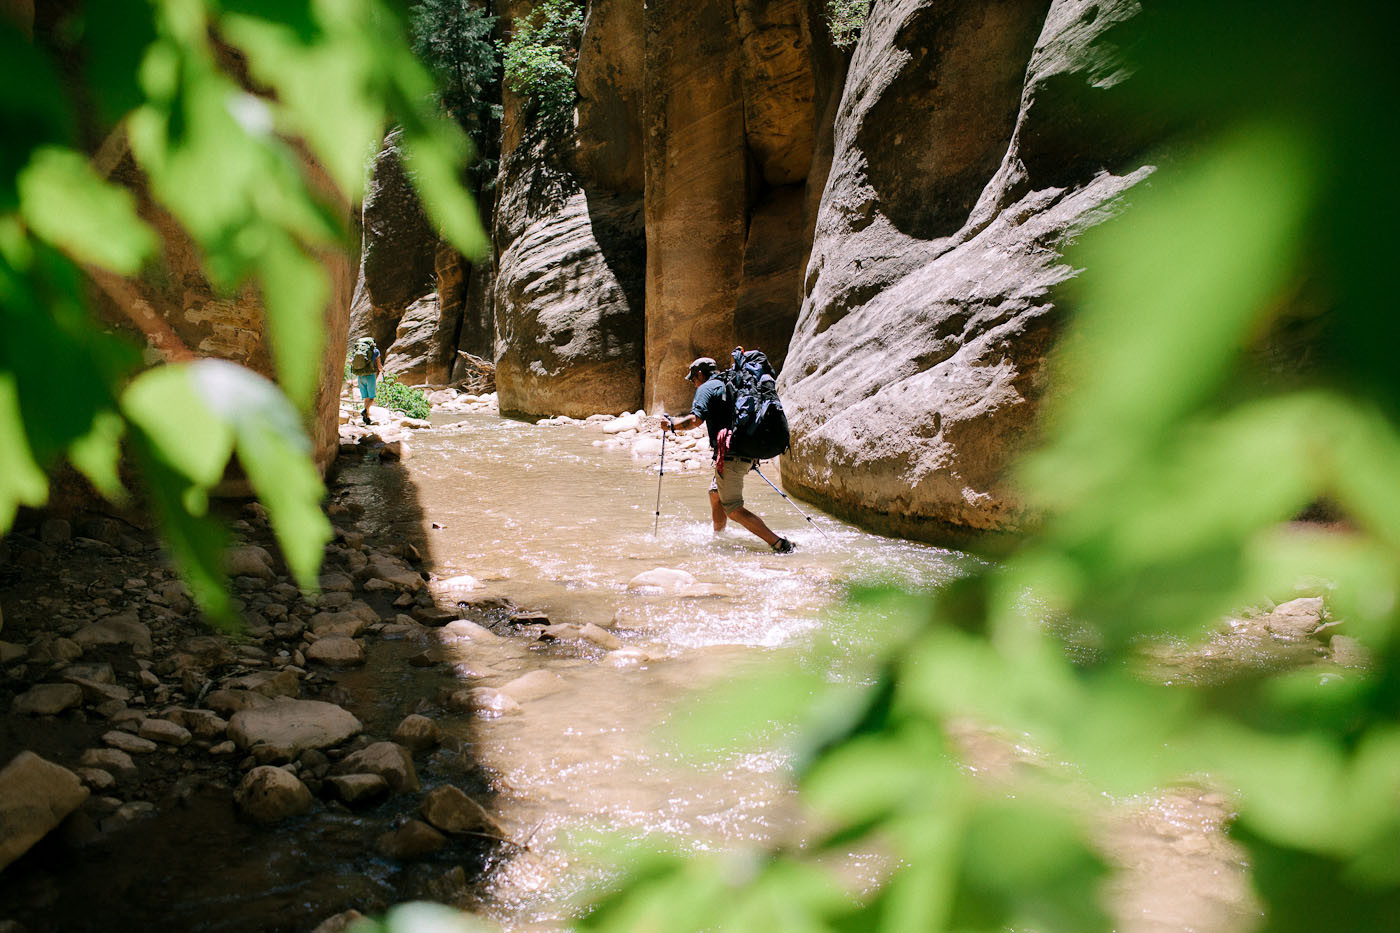 John Thiltgen hiking in the Narrows, Zion National Park, Utah